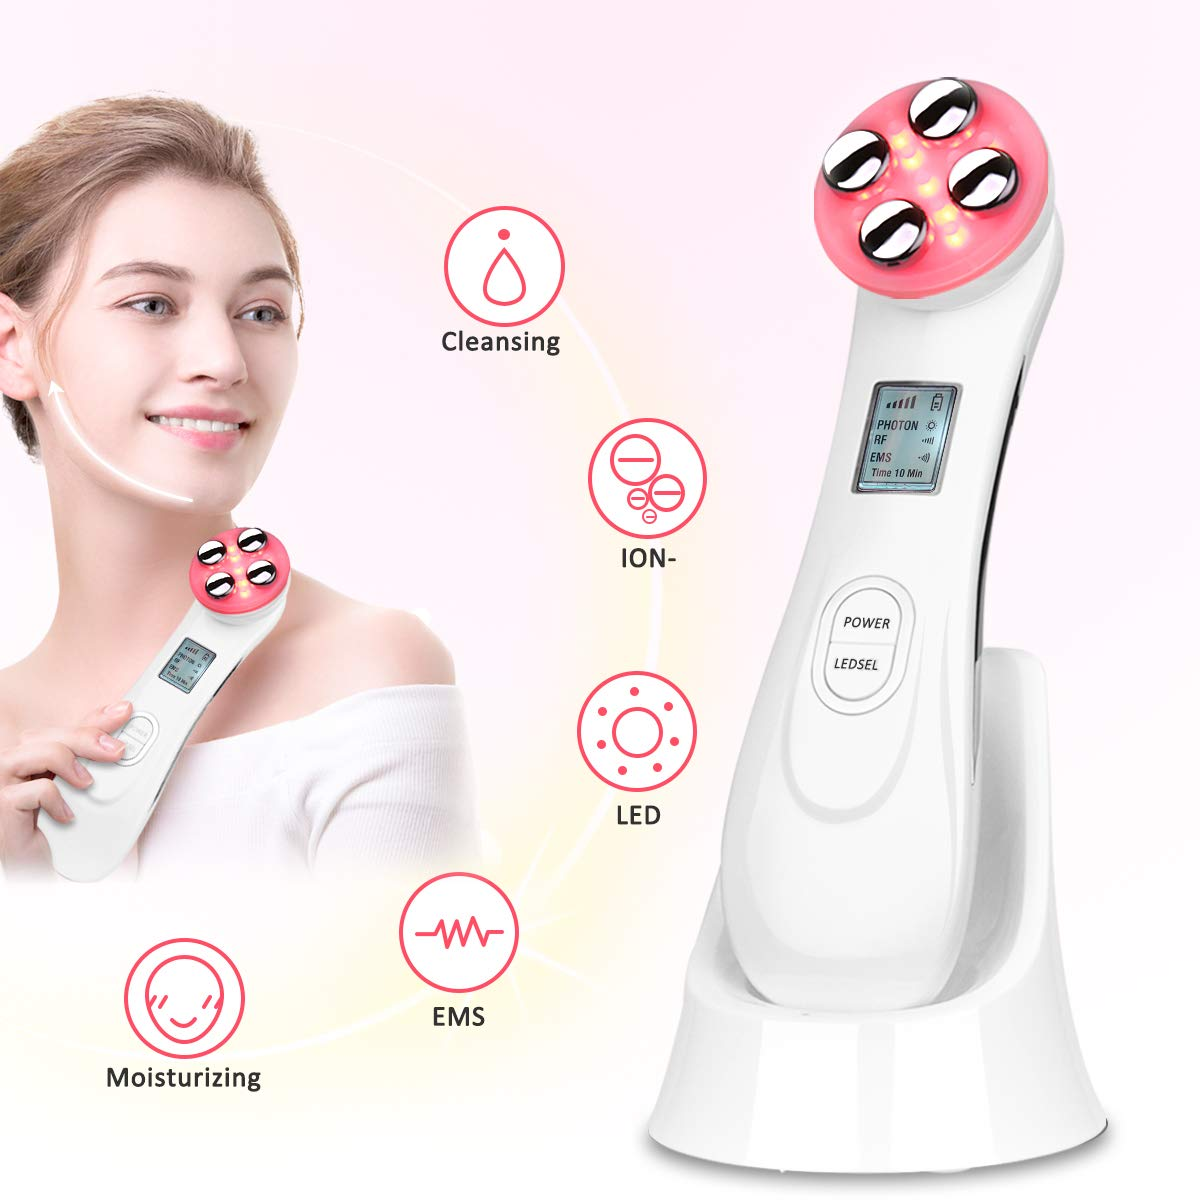 Skin Tightening Machine 5 in 1 Beauty Device EMS for Facial Lifting, Anti-Aging, Wrinkle Remover white